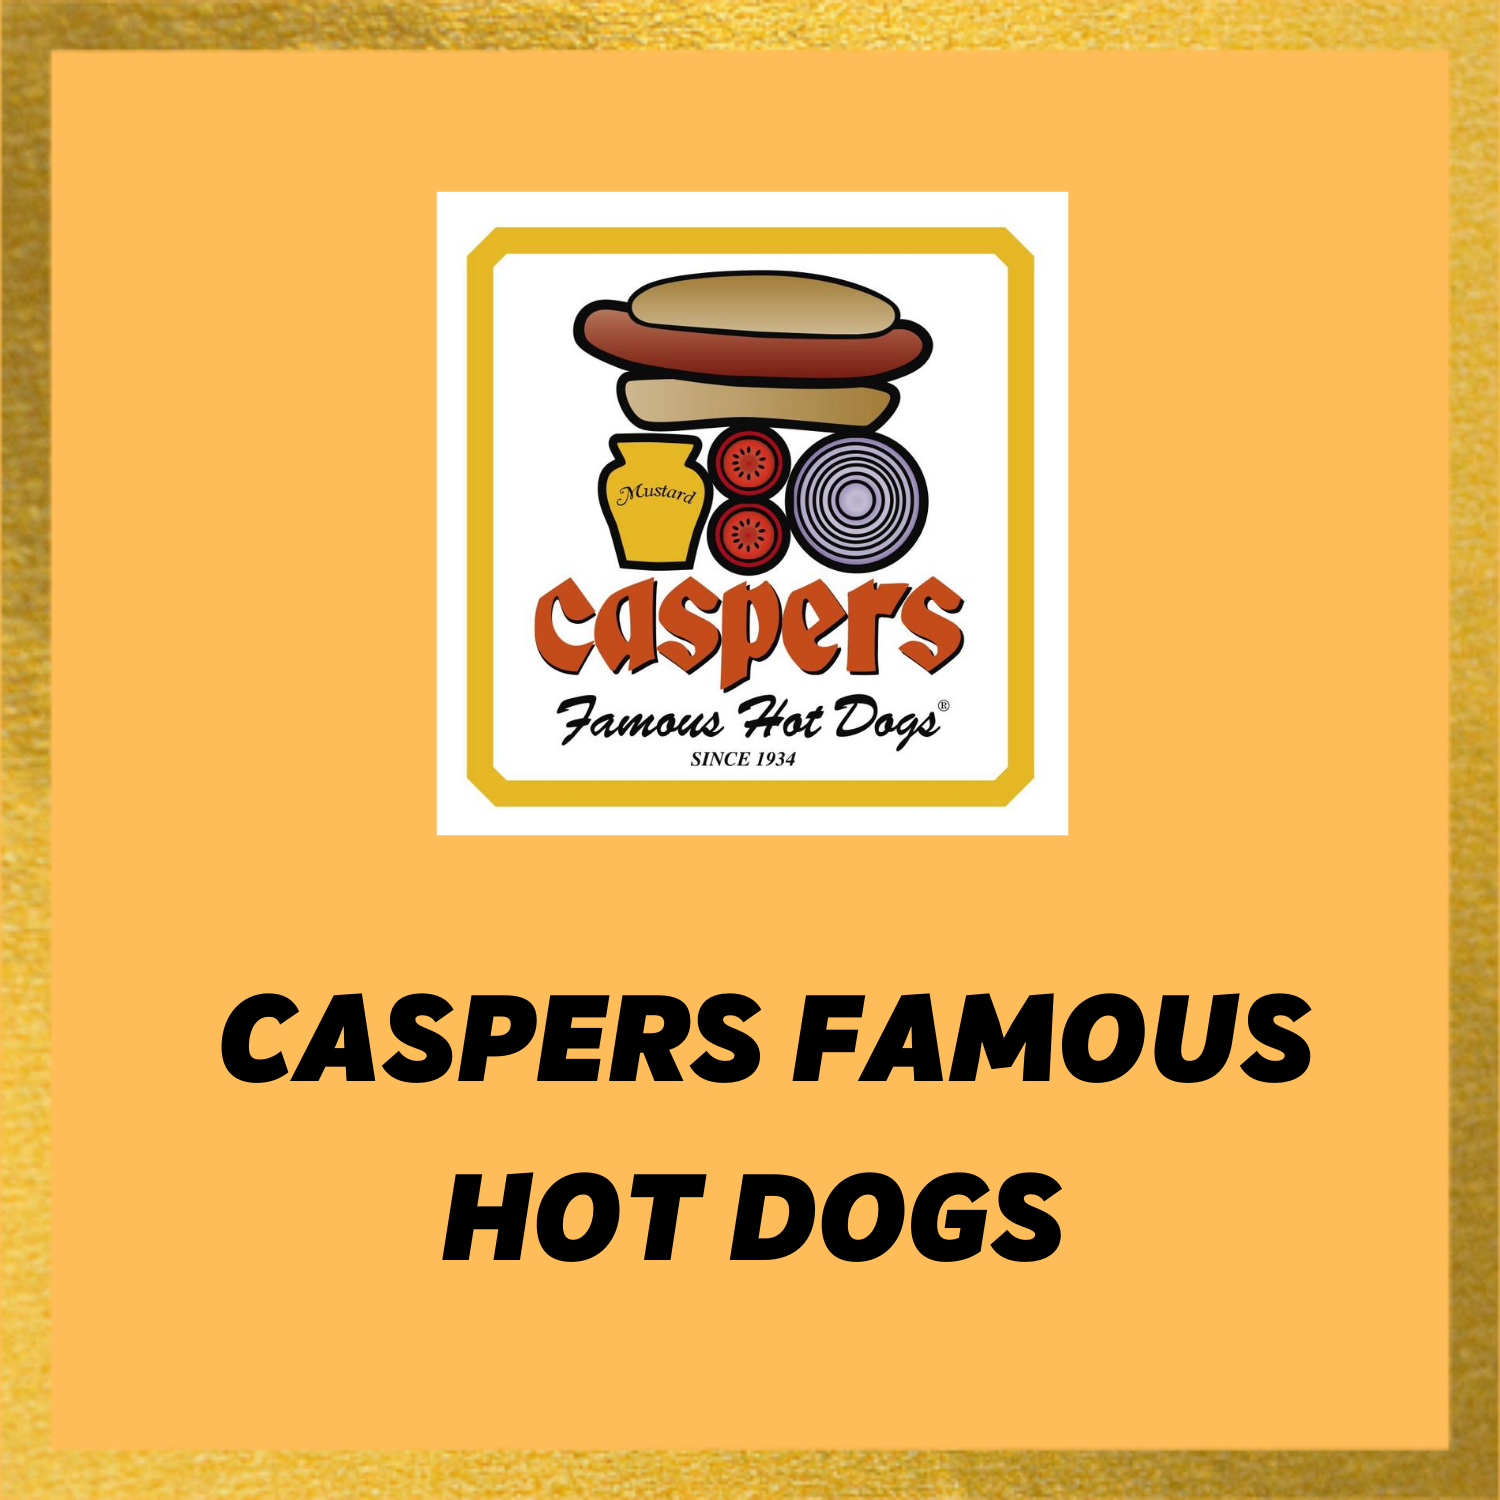 Caspers Hot Dogs Original Recipe